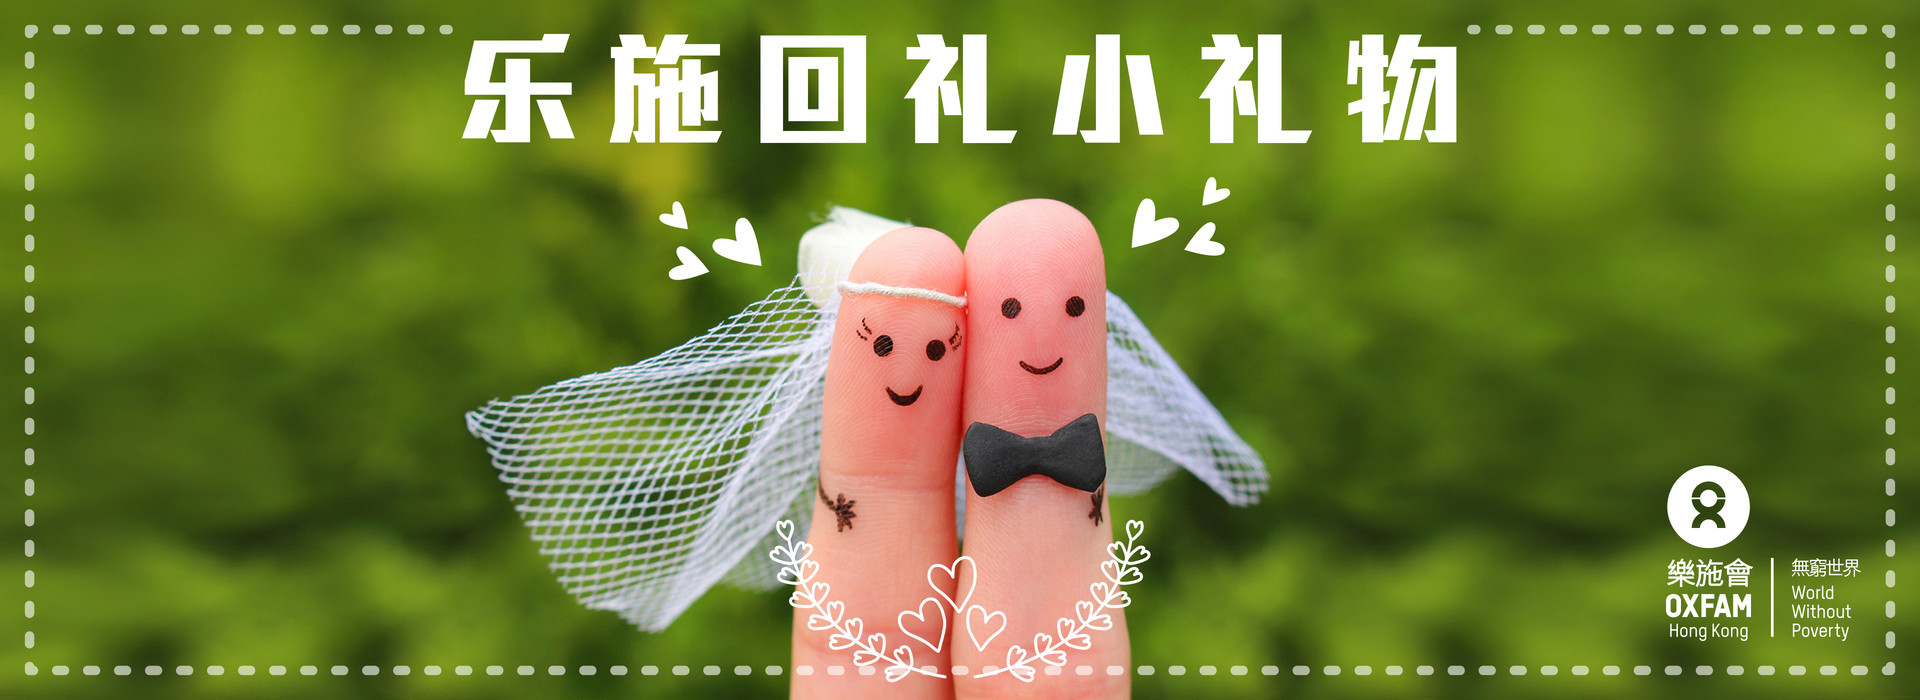 Oxfam Wedding Favor